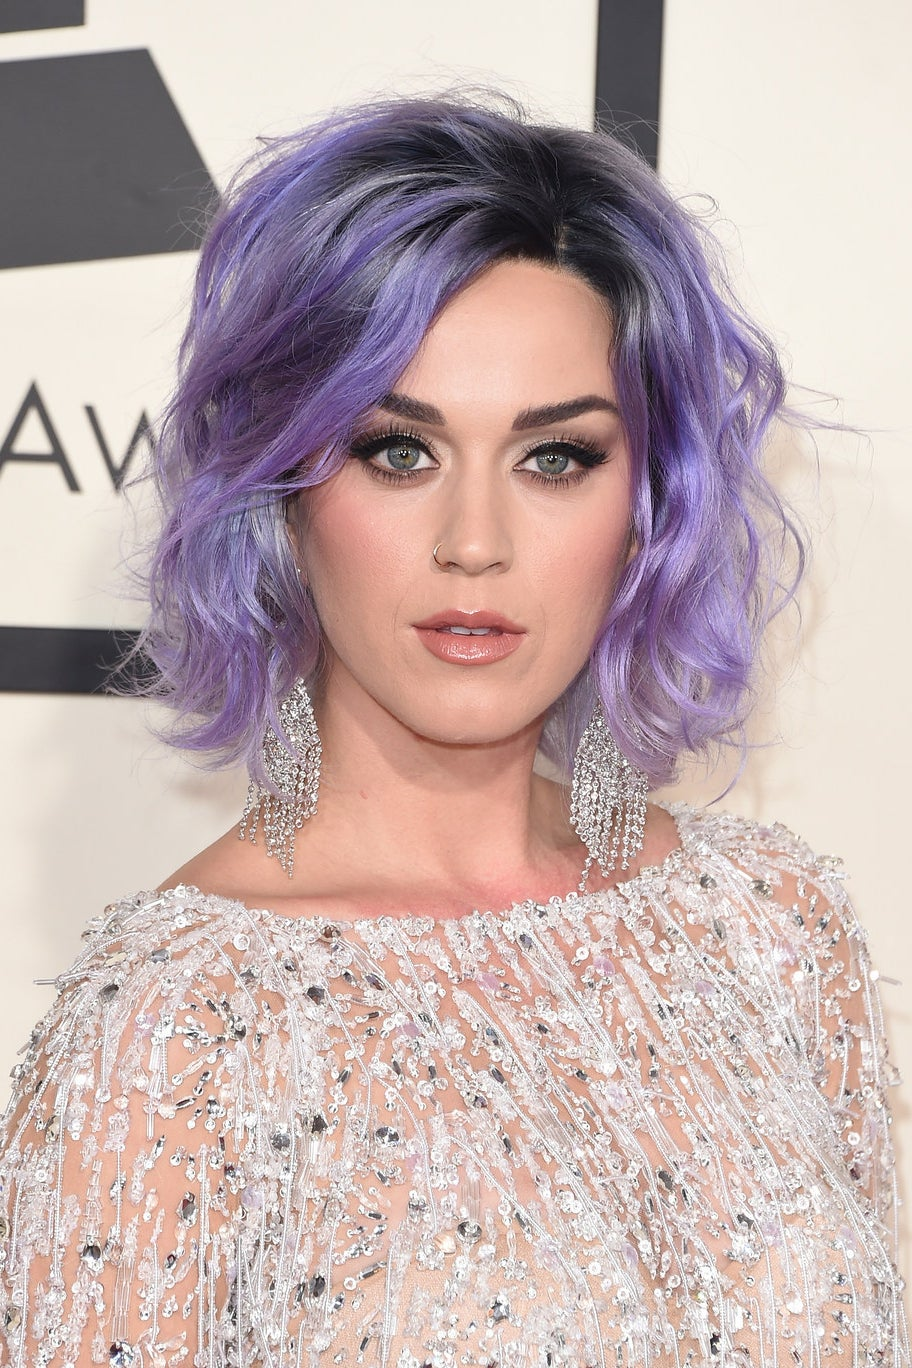 What Does Katy Perry Think about Taylor Swifts Bad Blood